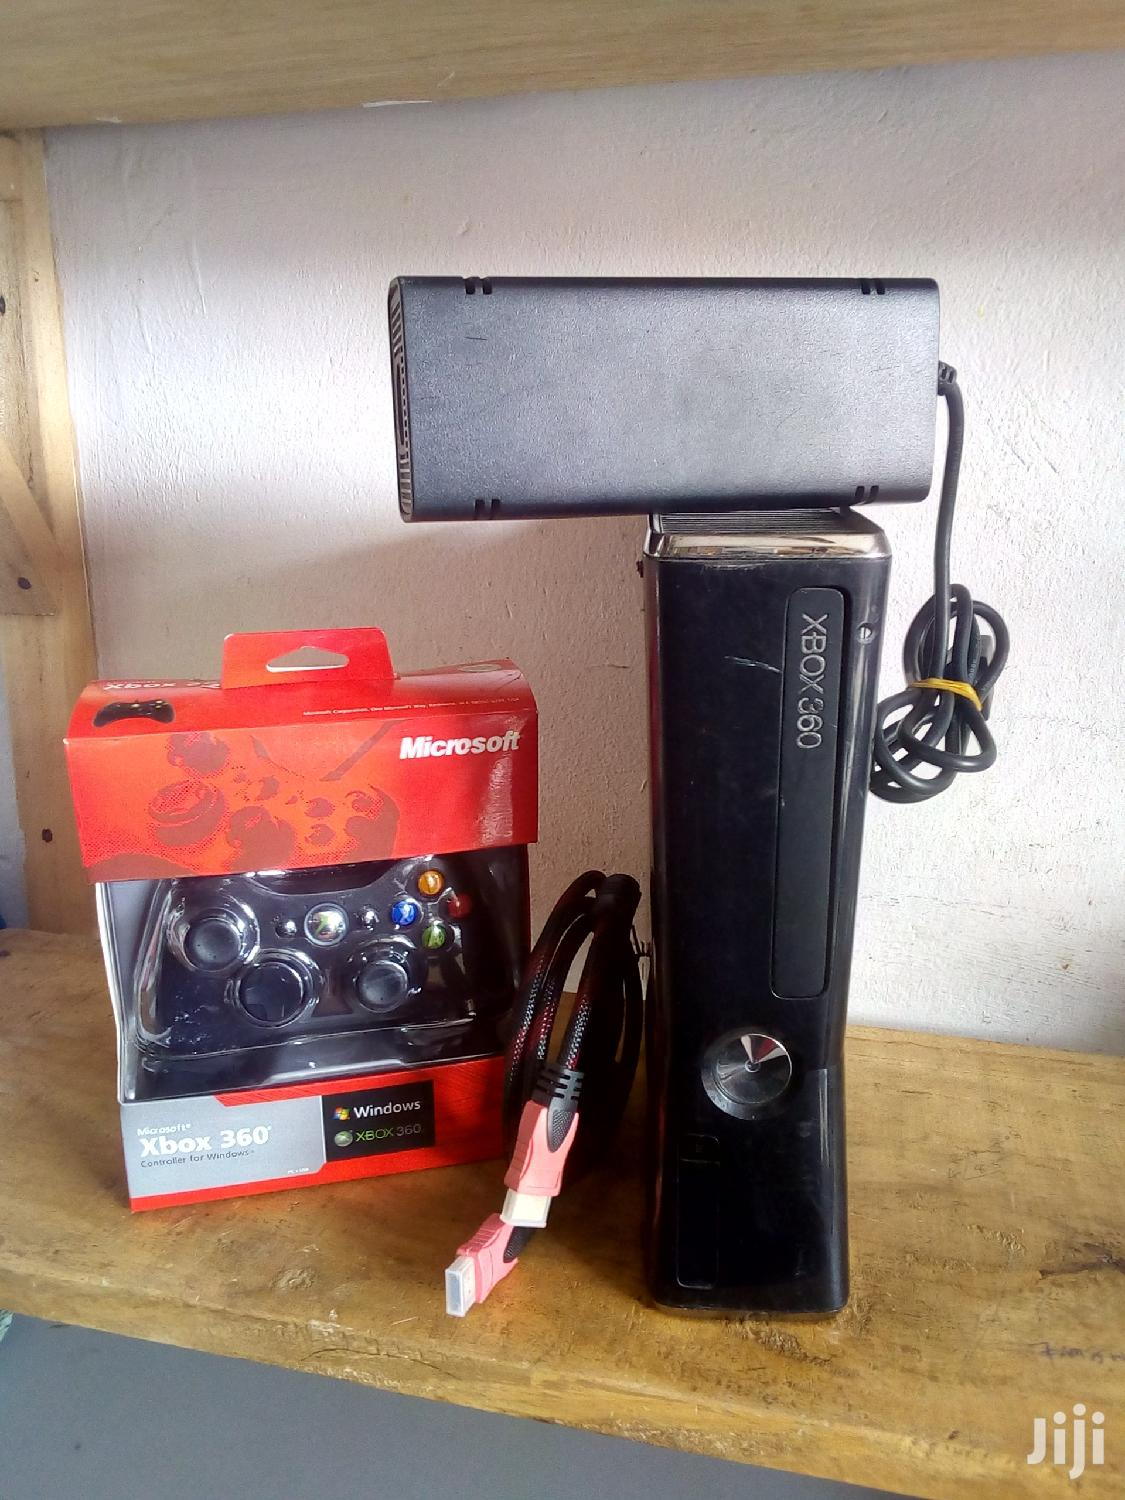 XBOX 360 Complete Set With Many Games | Video Game Consoles for sale in Ashaiman Municipal, Greater Accra, Ghana